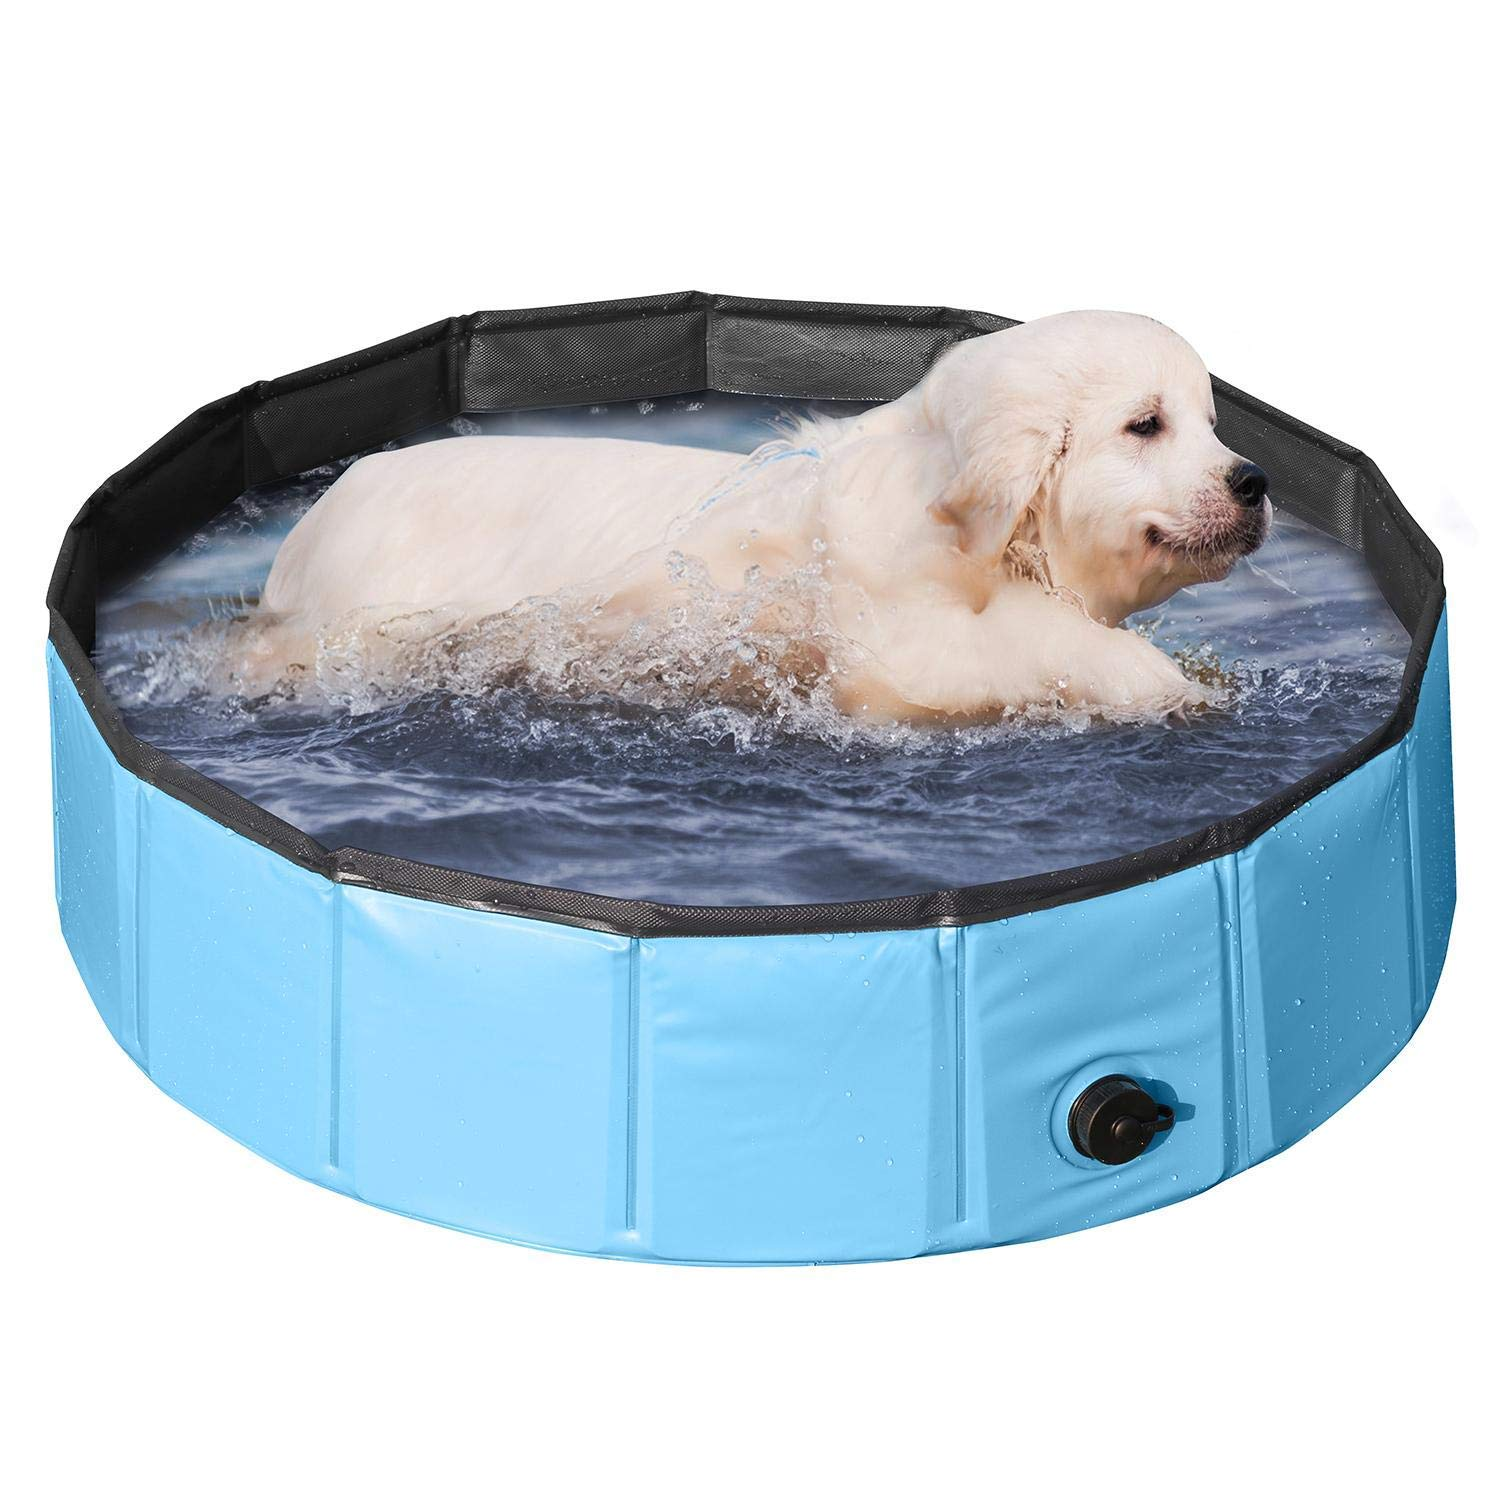 PVC Pet Foldable Swimming Pool Dogs Cats Bathing Tub Portable Bathtub  Collapsible Water Pond Pool & Kiddie Pools for Kids Pet Spa Whelping Box  Kiddies ...